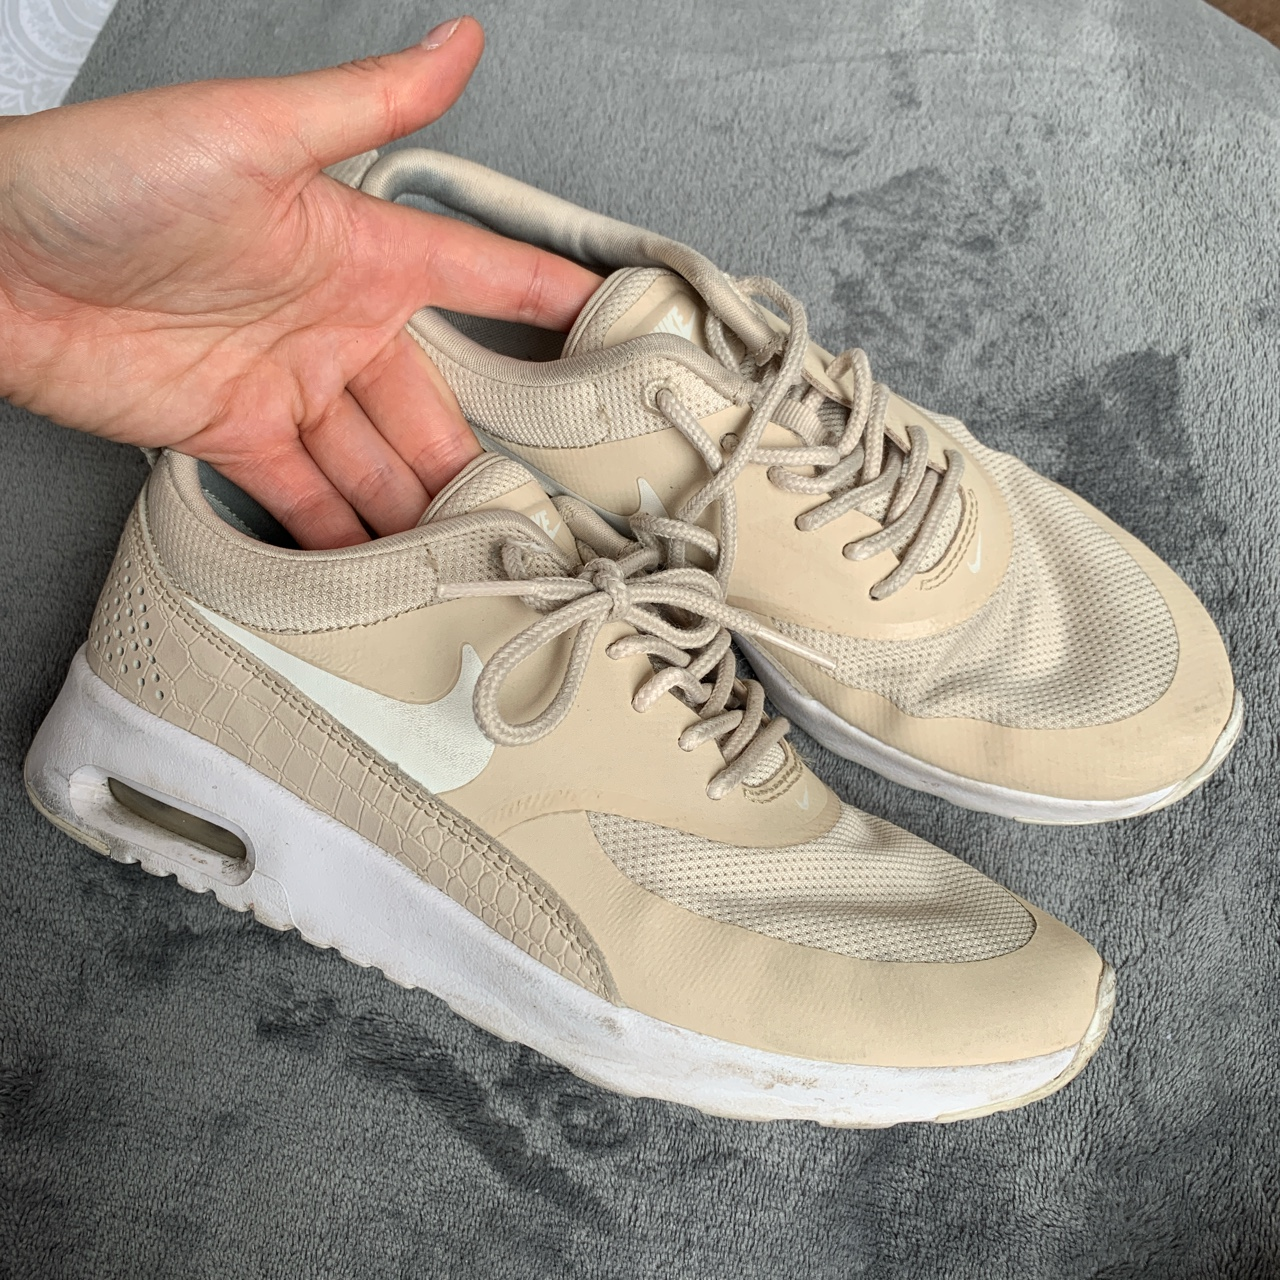 Nike air max Thea size 4 beige/nude